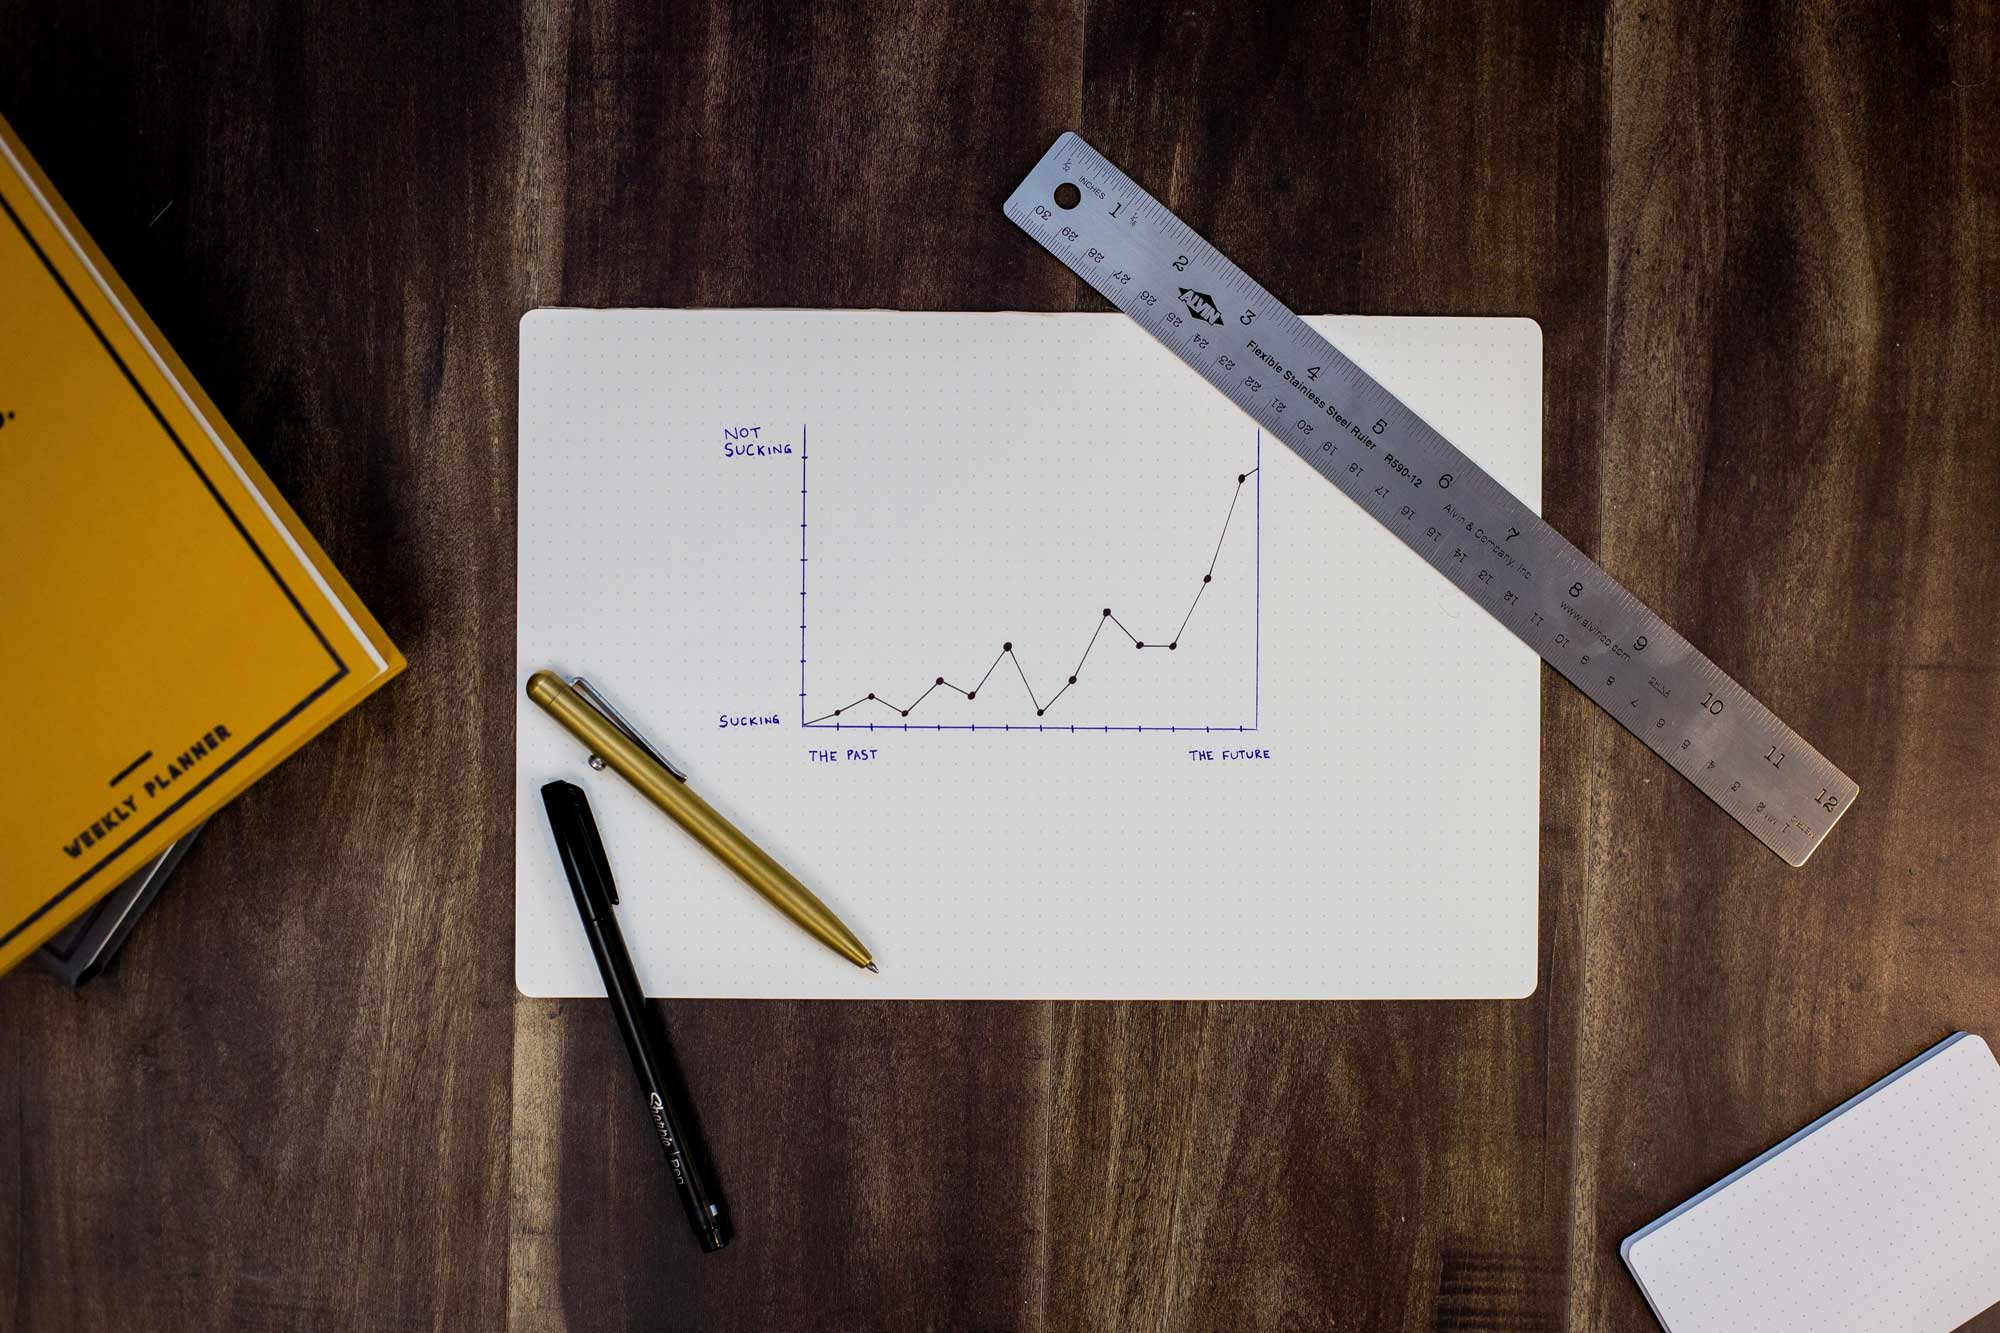 white paper with graph on desk with pen and ruler